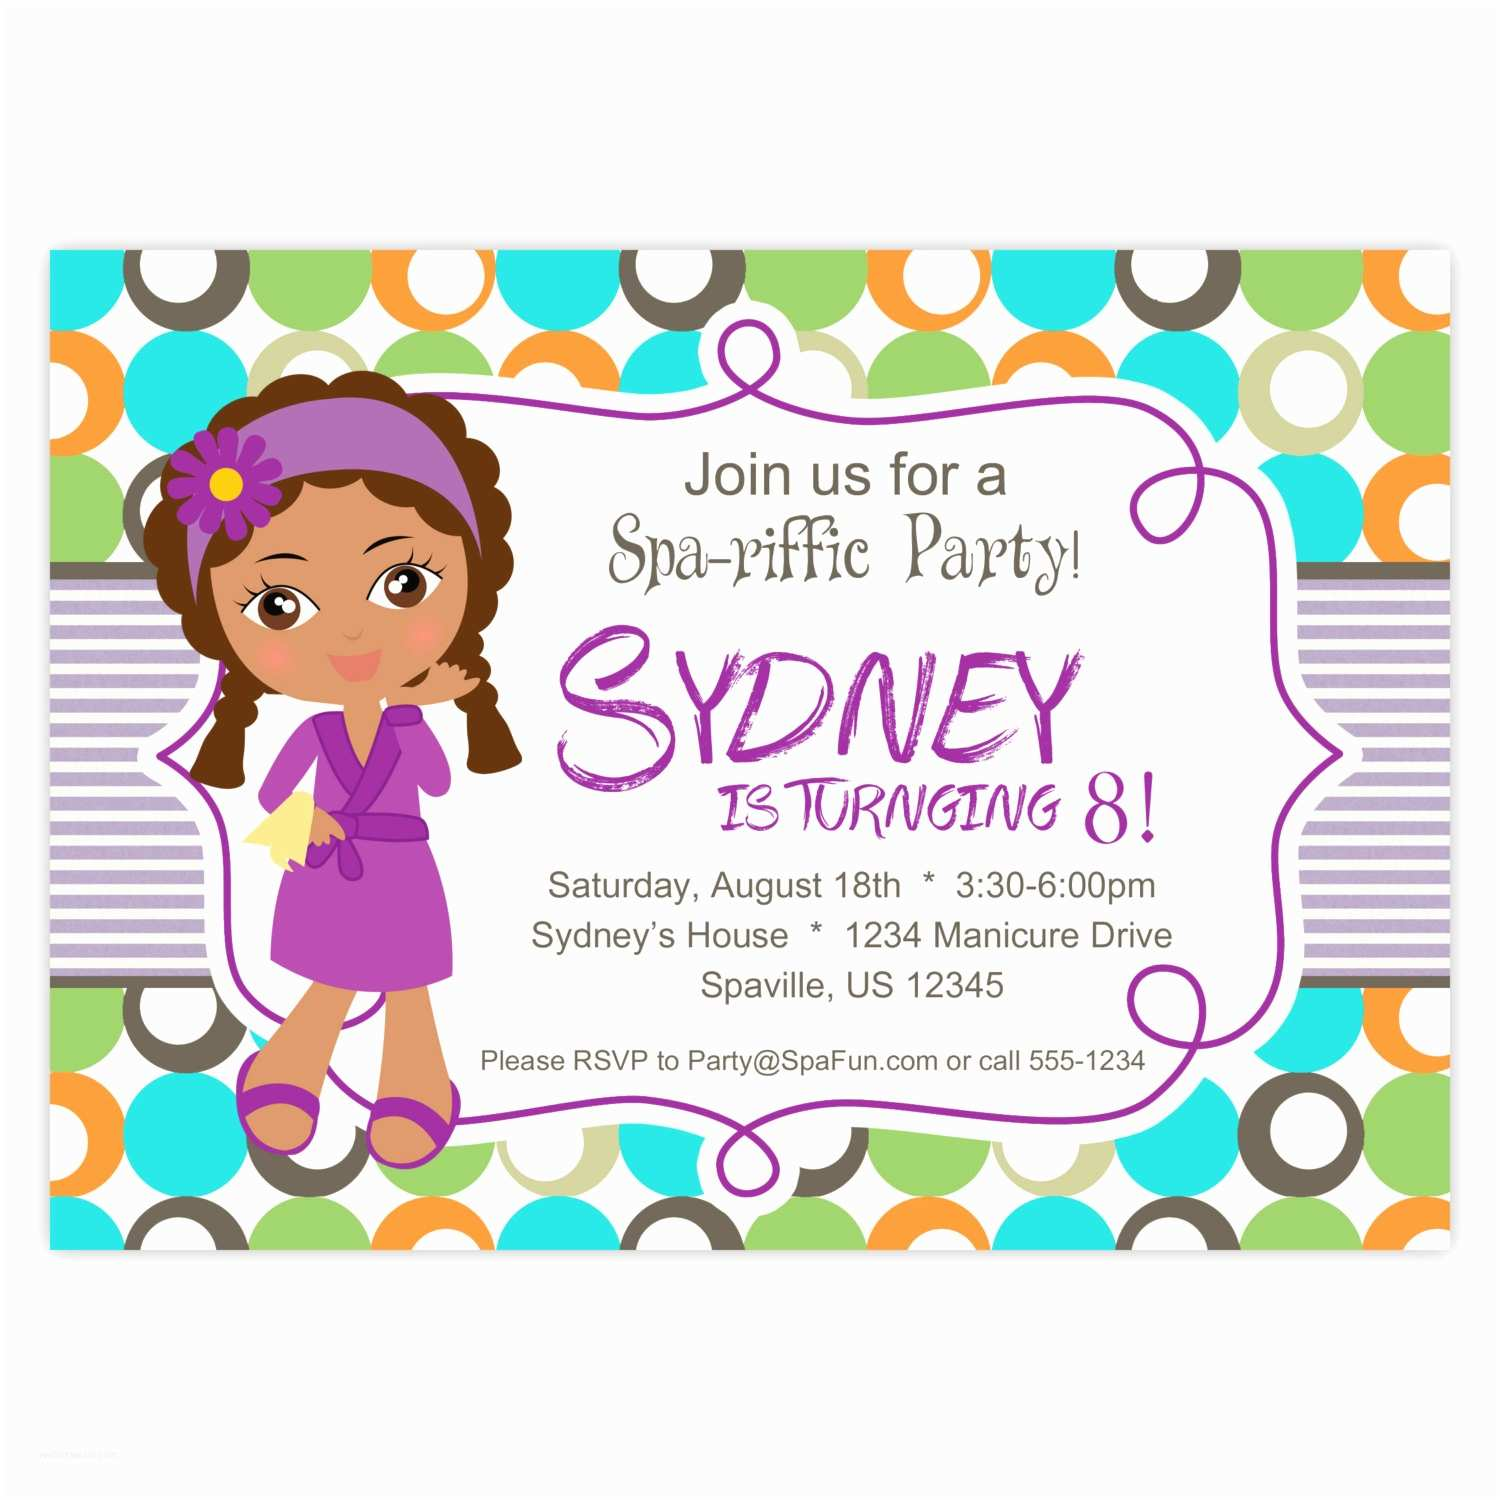 Spa Party Invitations Spa Party Invitation Lime Turquoise and orange Polka Dots